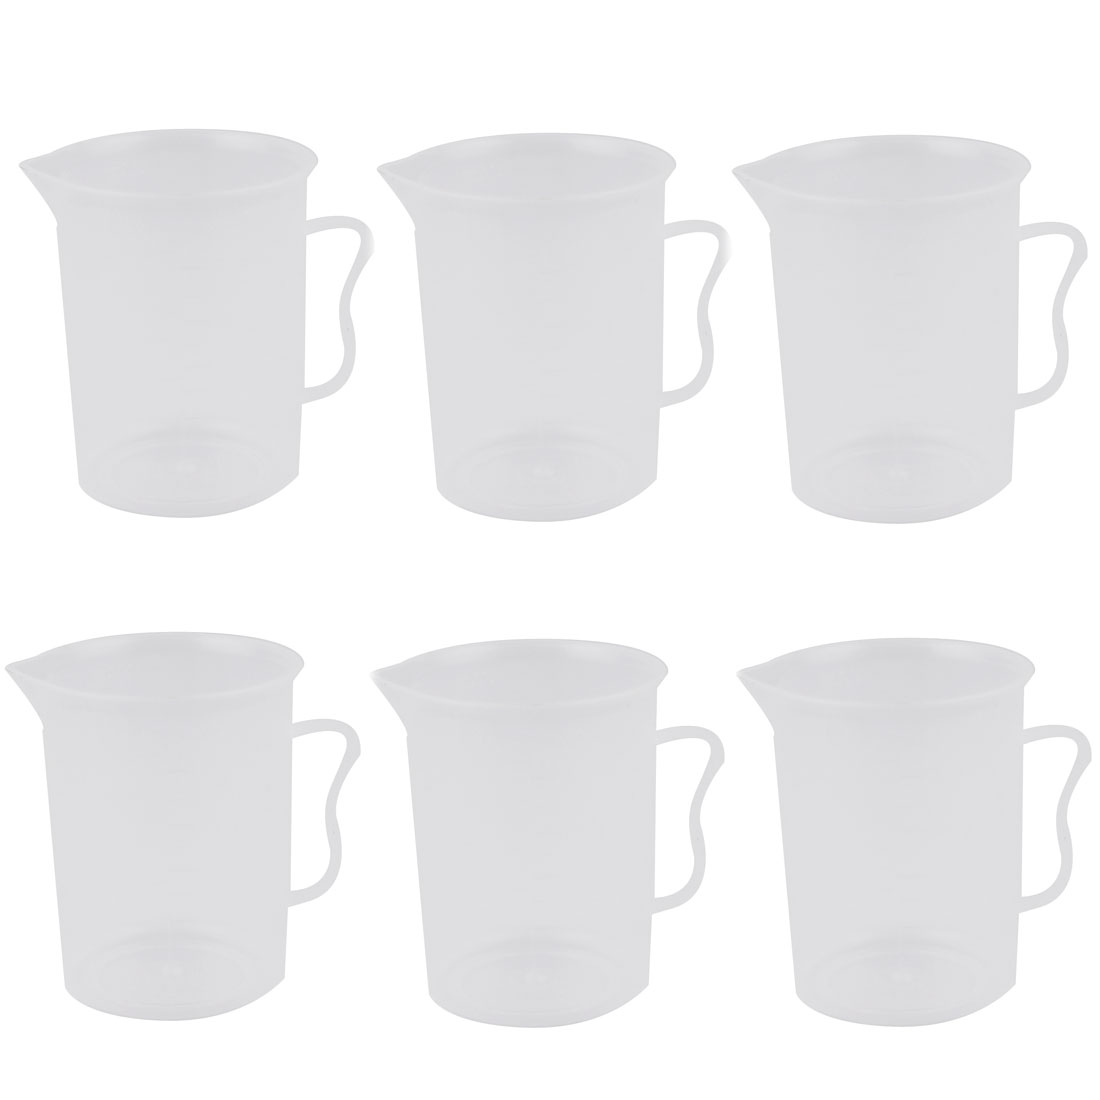 300ml Plastic Transparent Measuring Cup With Handle Beaker Laboratory Set 6 Pcs